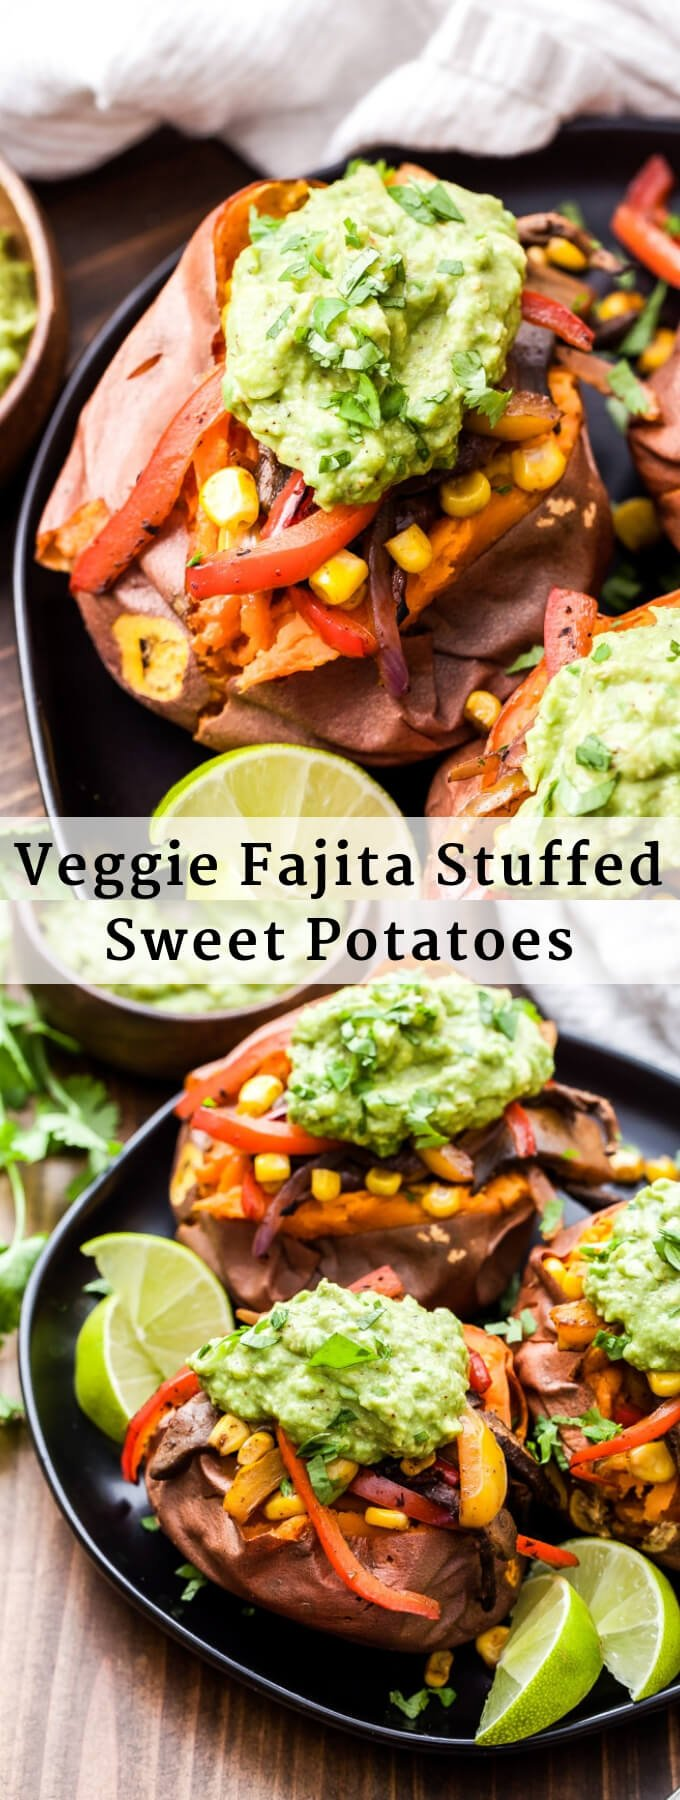 Veggie Fajita Stuffed Sweet Potatoes are great way to change up traditional fajitas. Baked sweet potatoes are topped with mushrooms, peppers and onions in a flavorful blend of Mexican spices. Finish them off with guacamole for a healthy and filling meatless dinner! #fajitas #sweetpotato #vegetables #vegan #glutenfree #healthydinner